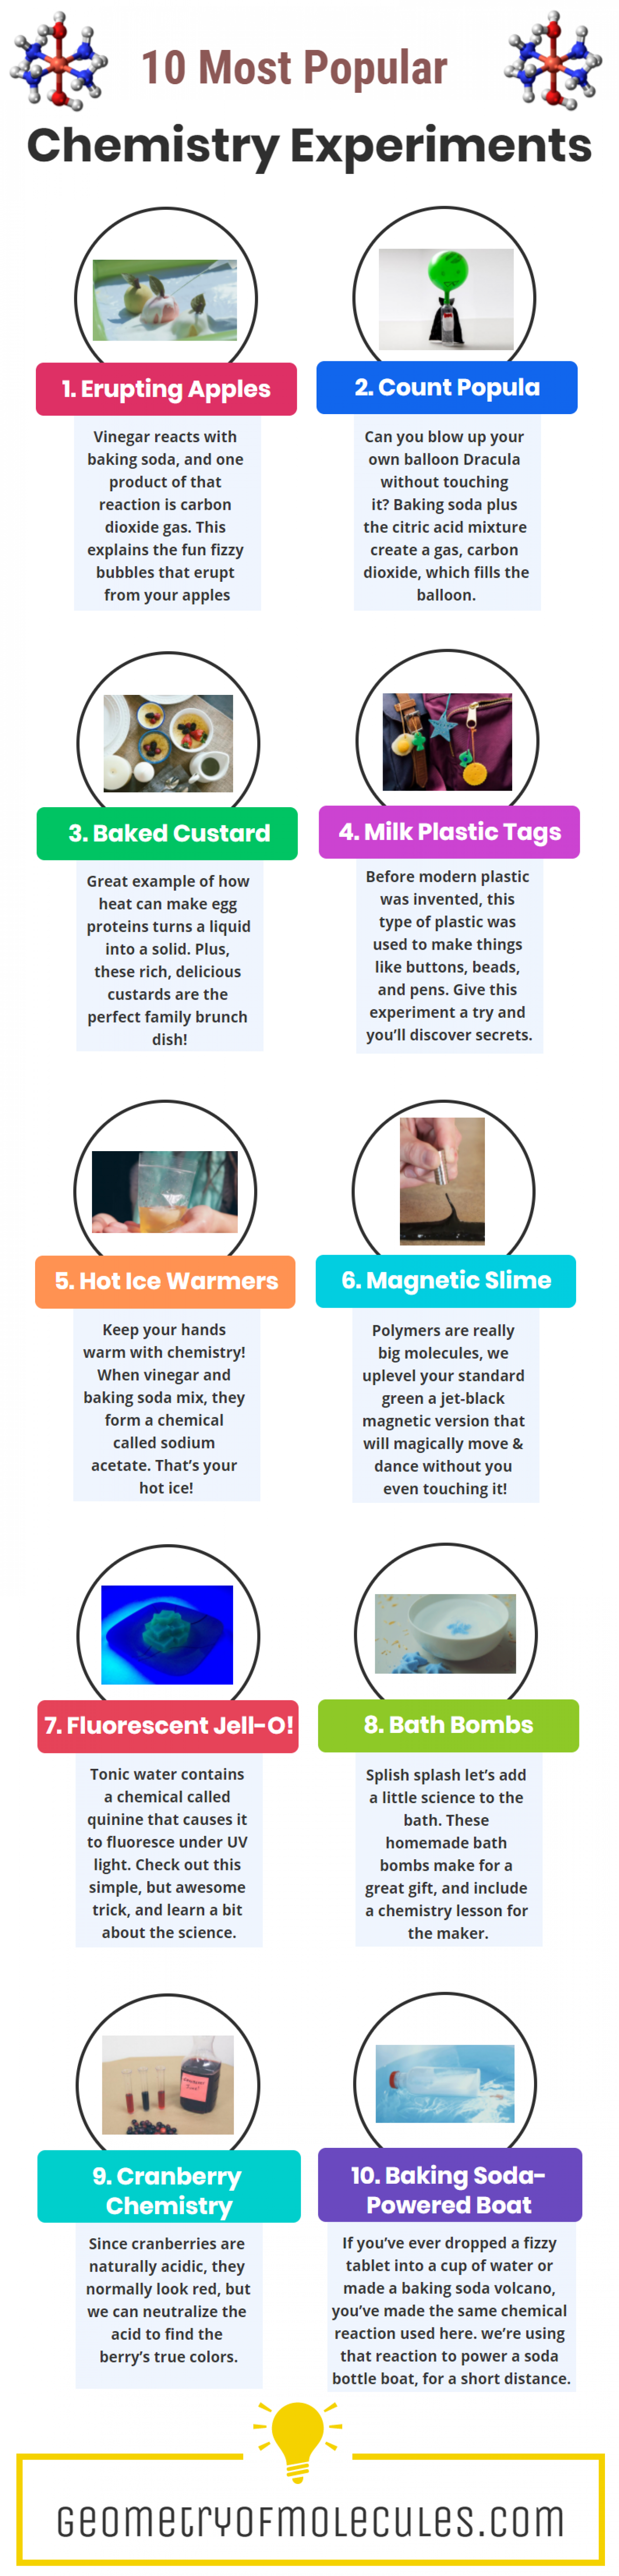 10 Most Popular Chemistry Experiments Infographic